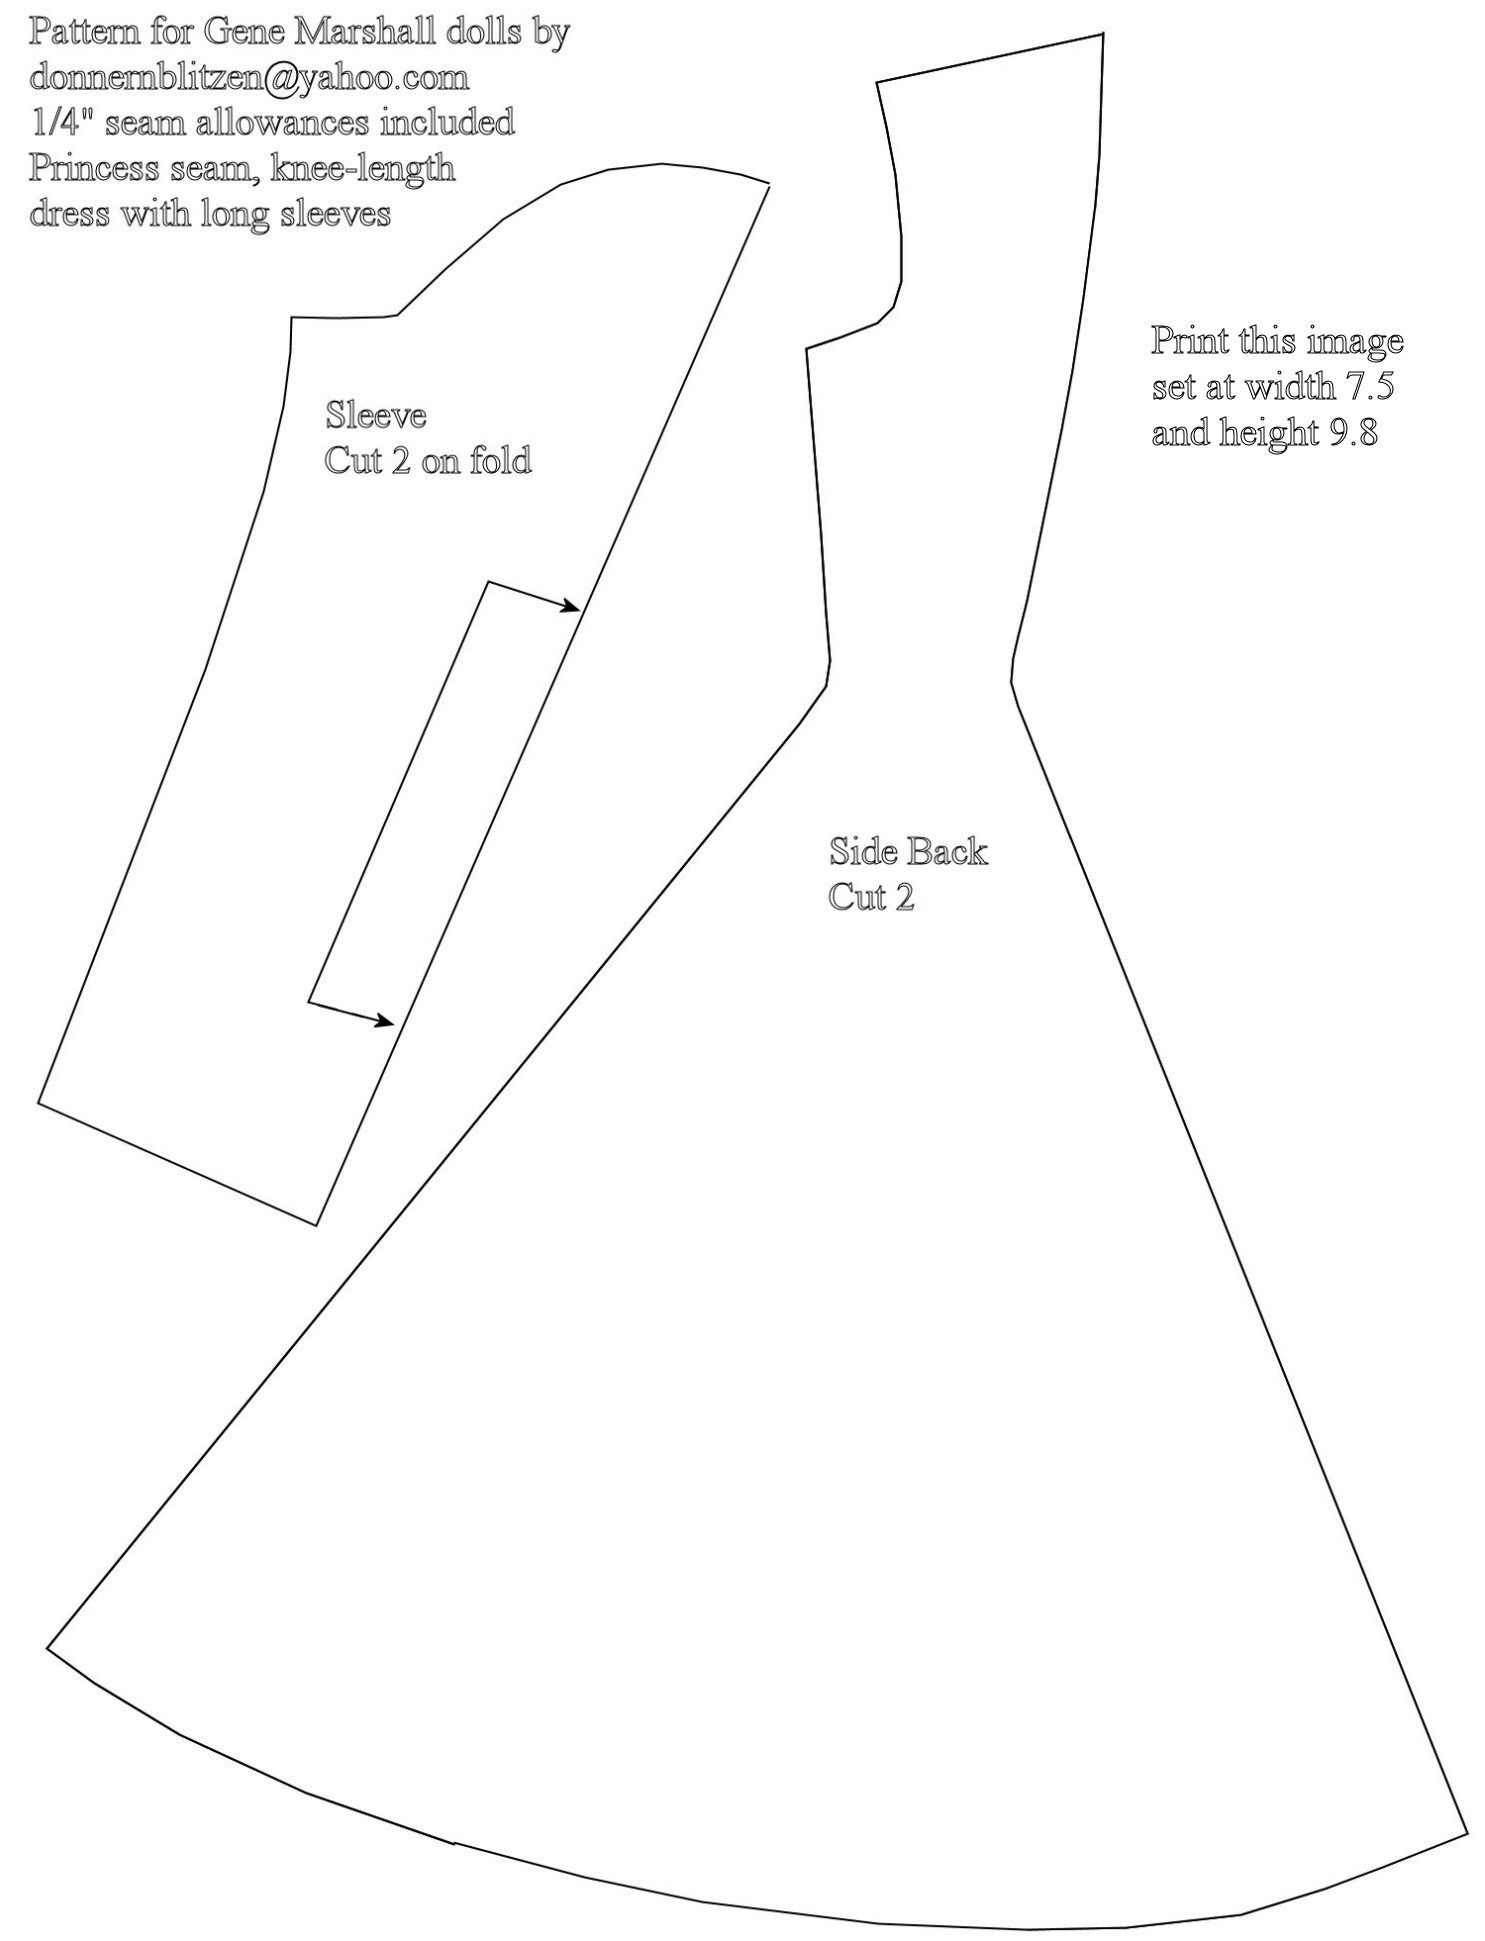 Free Printable Barbie Doll Cloths Patterns | Barbie | Barbie Clothes - Free Printable Barbie Doll Sewing Patterns Template